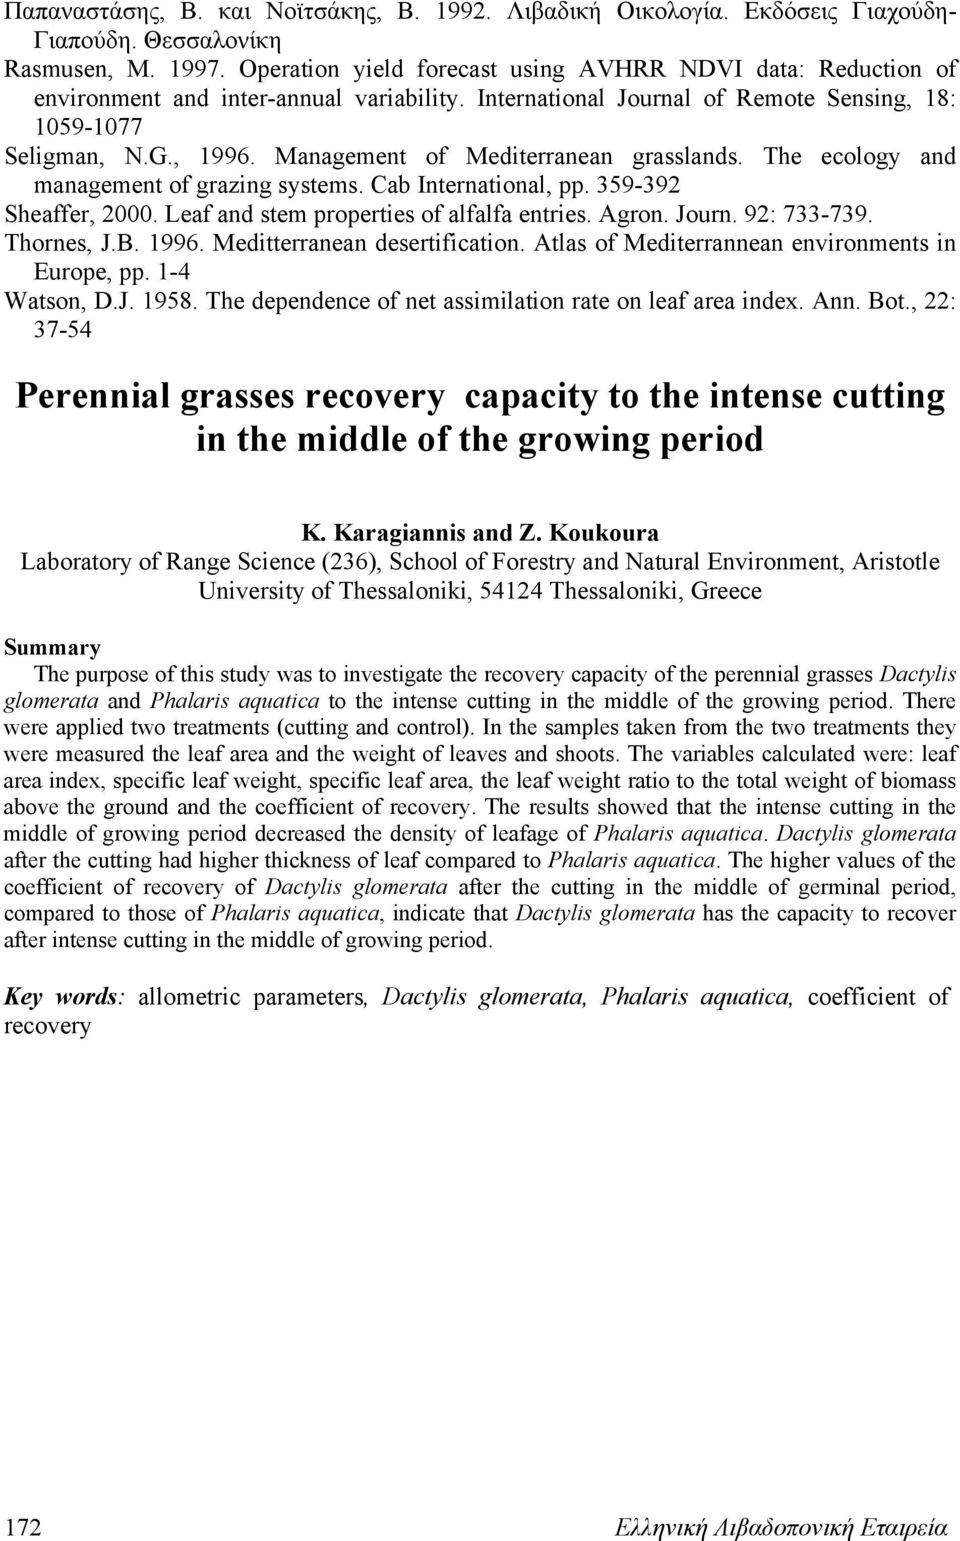 Management of Mediterranean grasslands. The ecology and management of grazing systems. Cab International, pp. 359-392 Sheaffer, 2000. Leaf and stem properties of alfalfa entries. Agron. Journ.